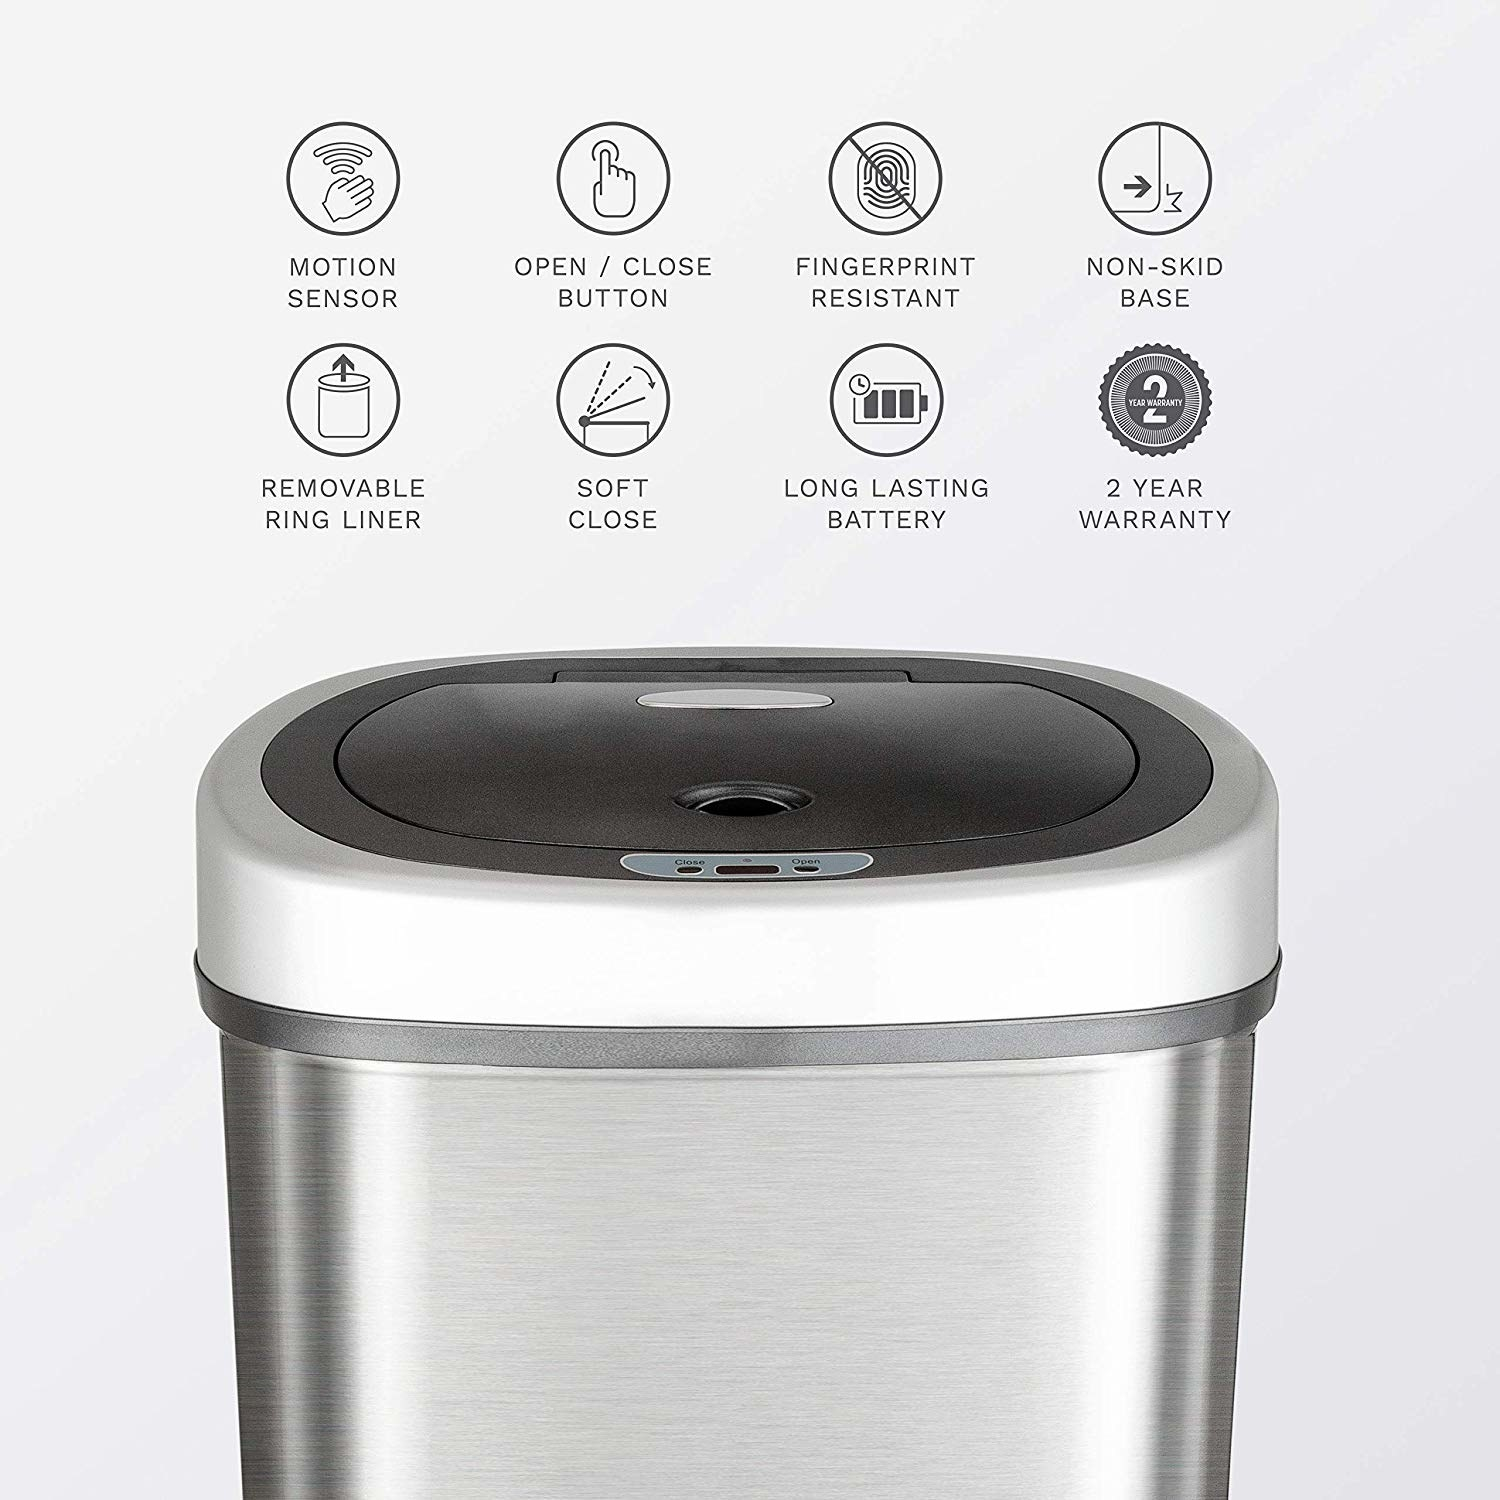 The trashcan with graphics showing the different benefits it has